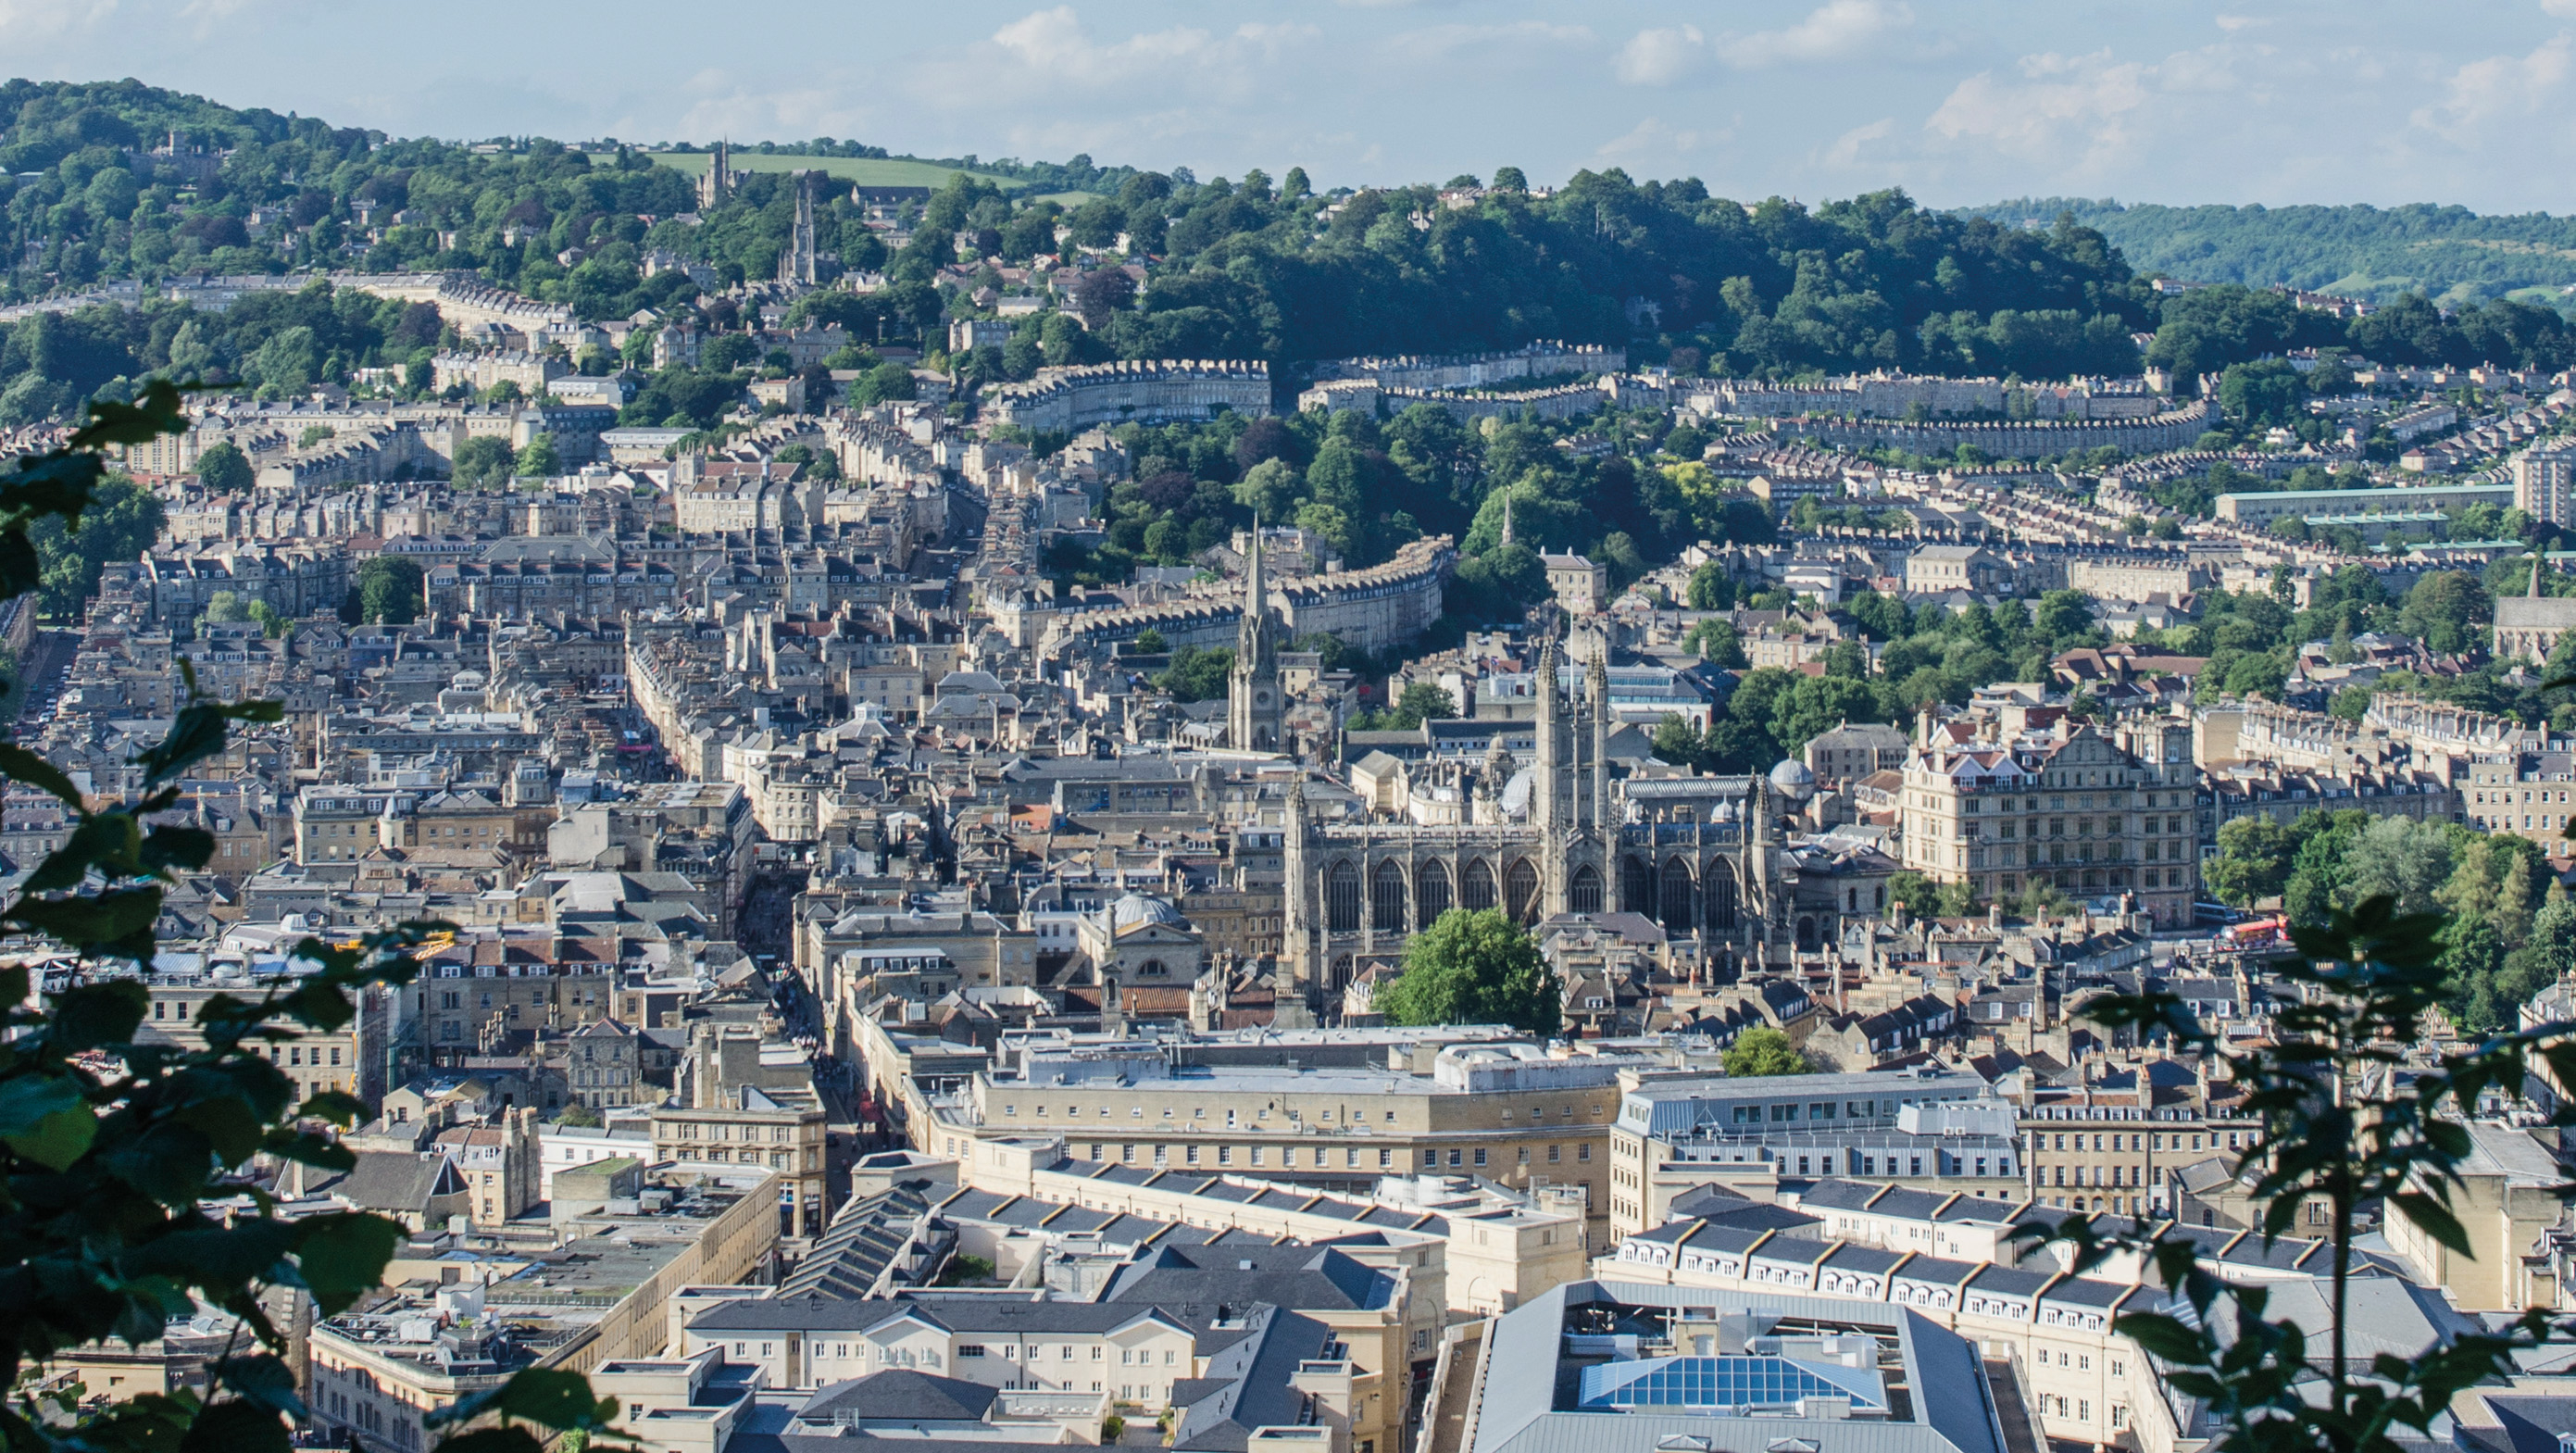 The city of the Bath from a distance